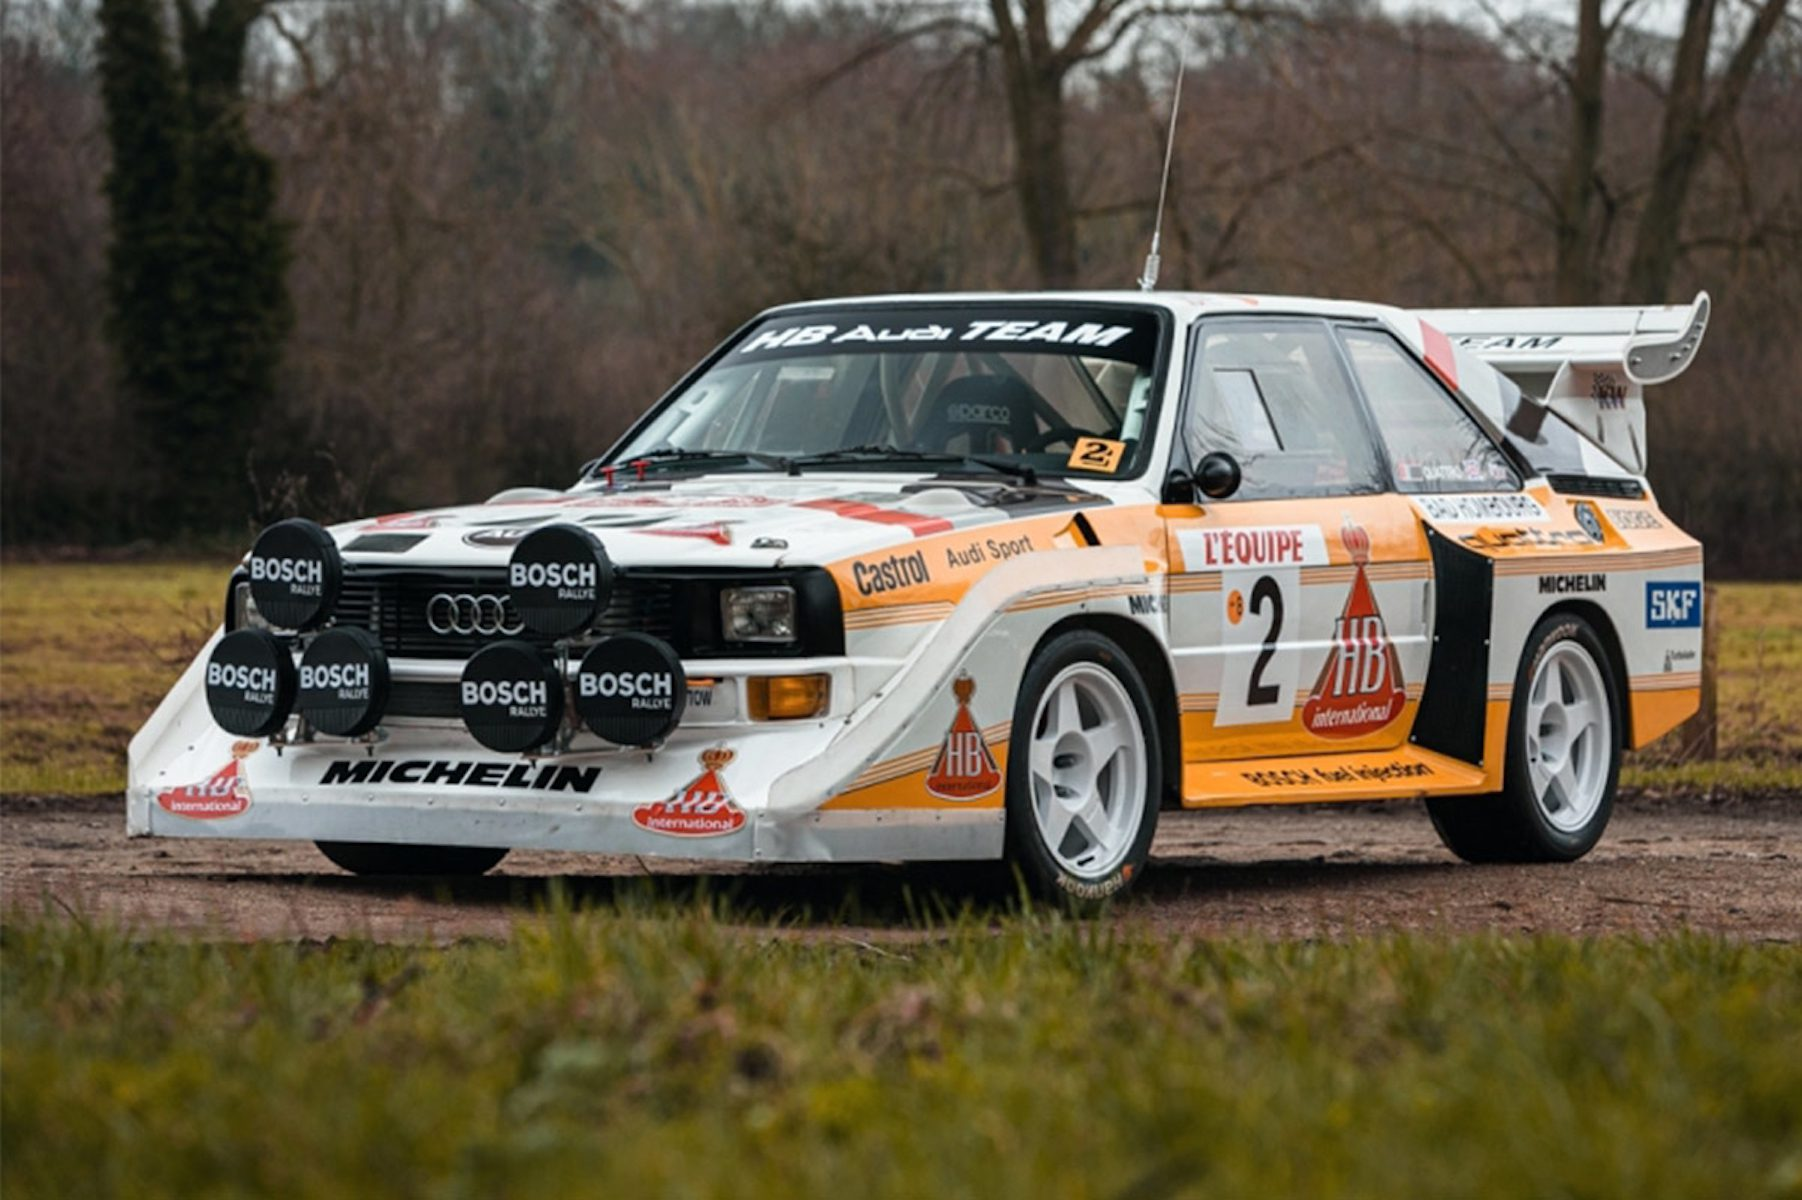 A side view of a 1986 Audi Sport Quattro S1 Evo 2 Rally Car in its natural habitat.